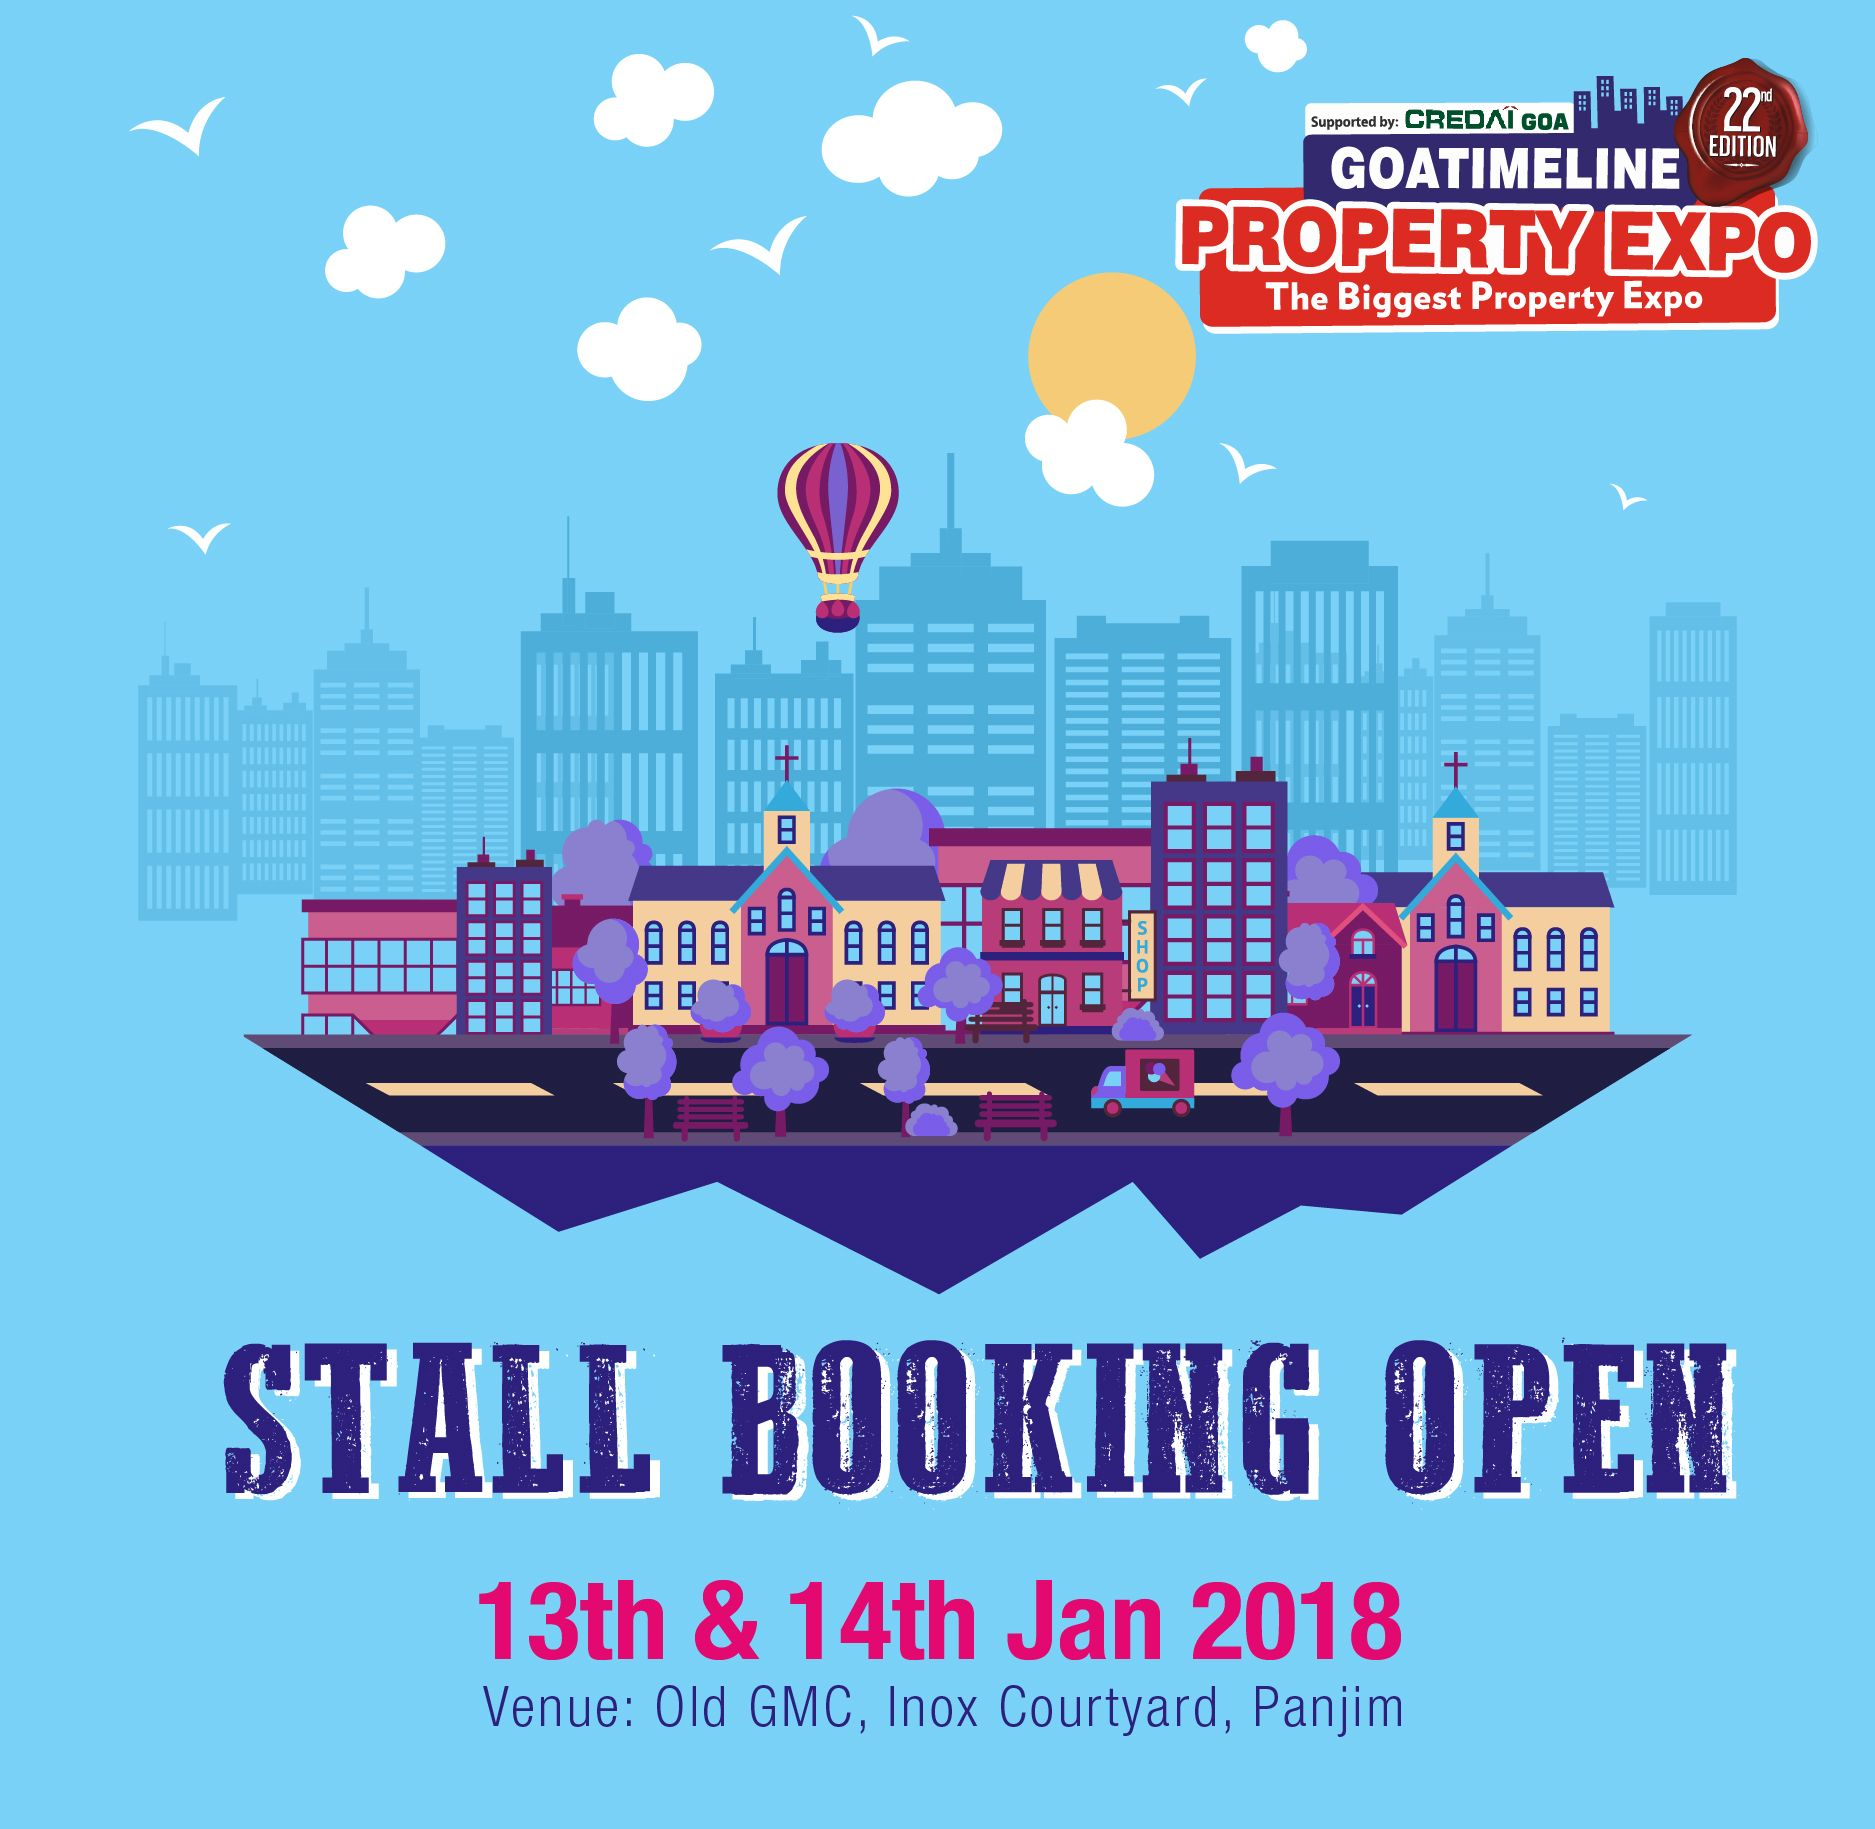 Trust Is Built With Consistency And Thus We Bring You The 22nd Edition Of The Goa Property Expo Call Us To Book A Stall Now 9822200034 Expo Goa Property